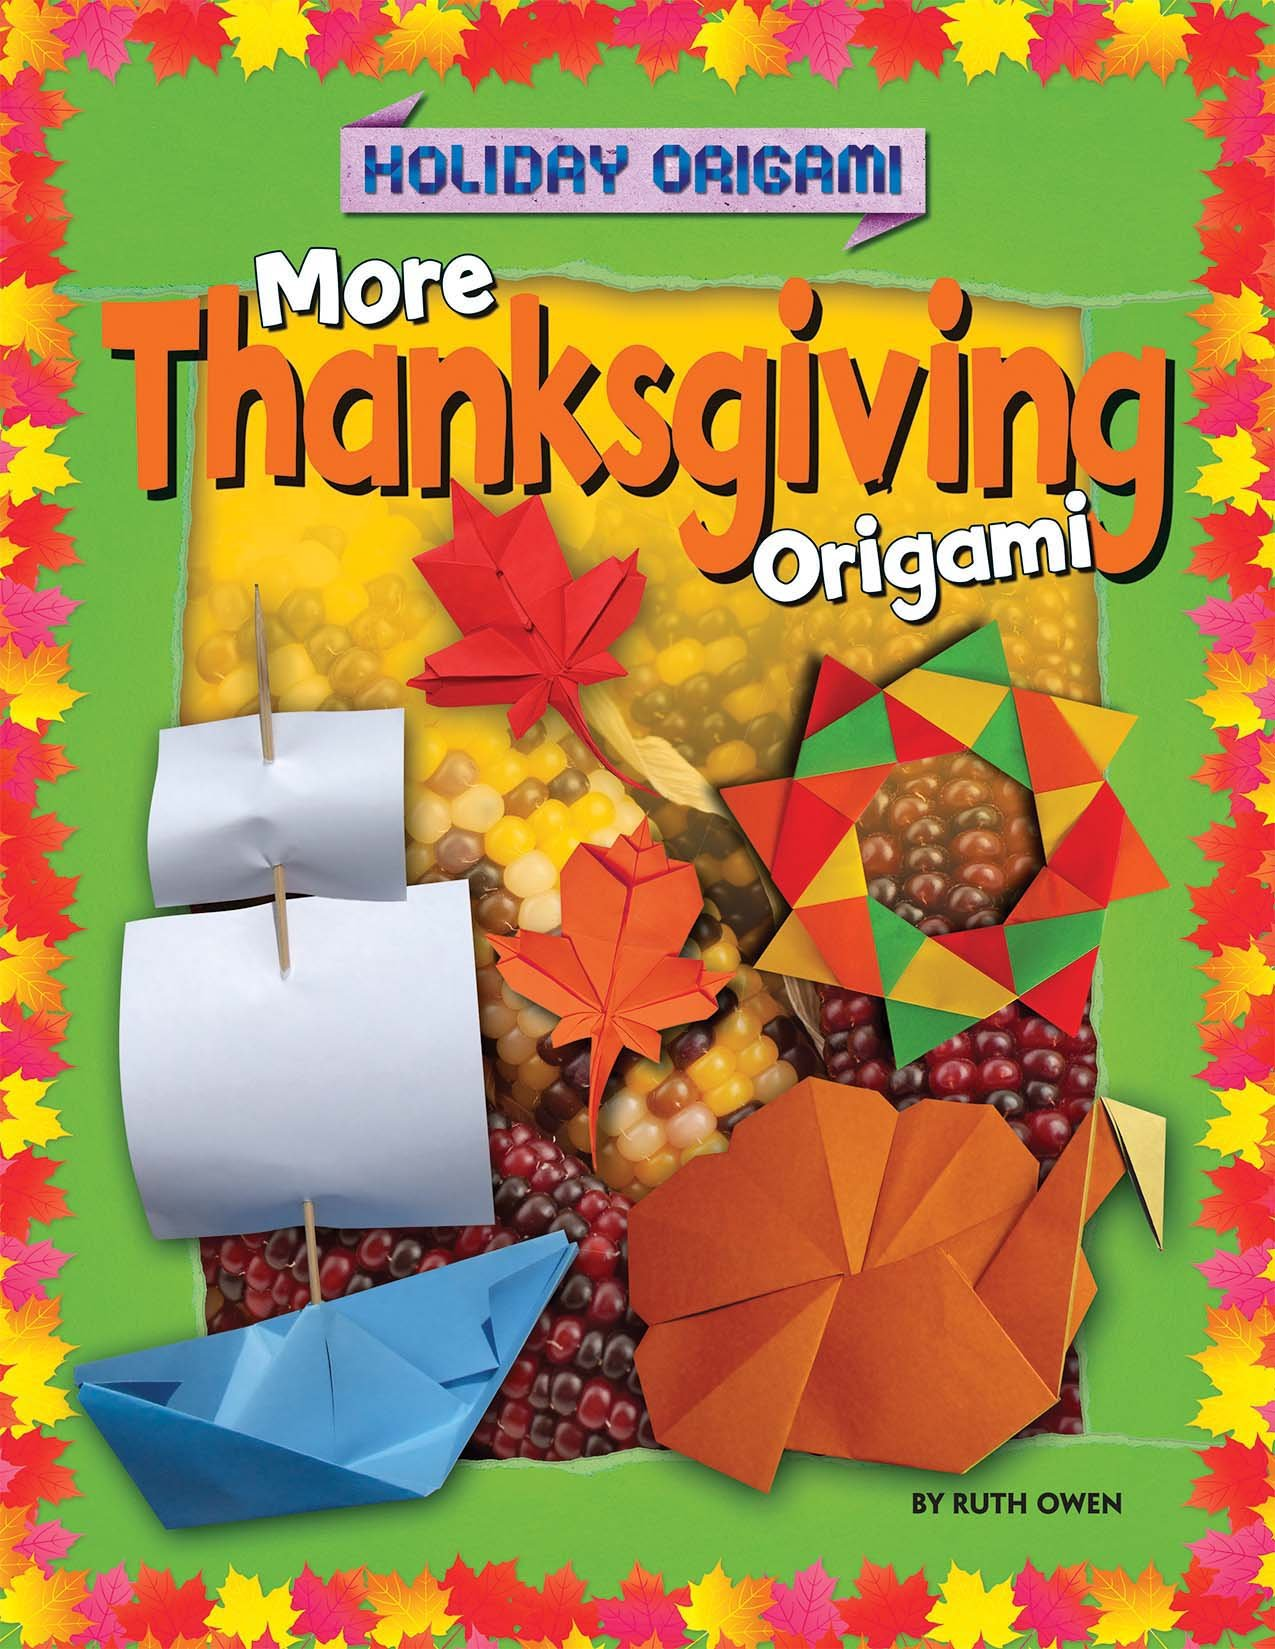 15 Best Thanksgiving Origami images   Origami, Origami easy ...   1649x1275